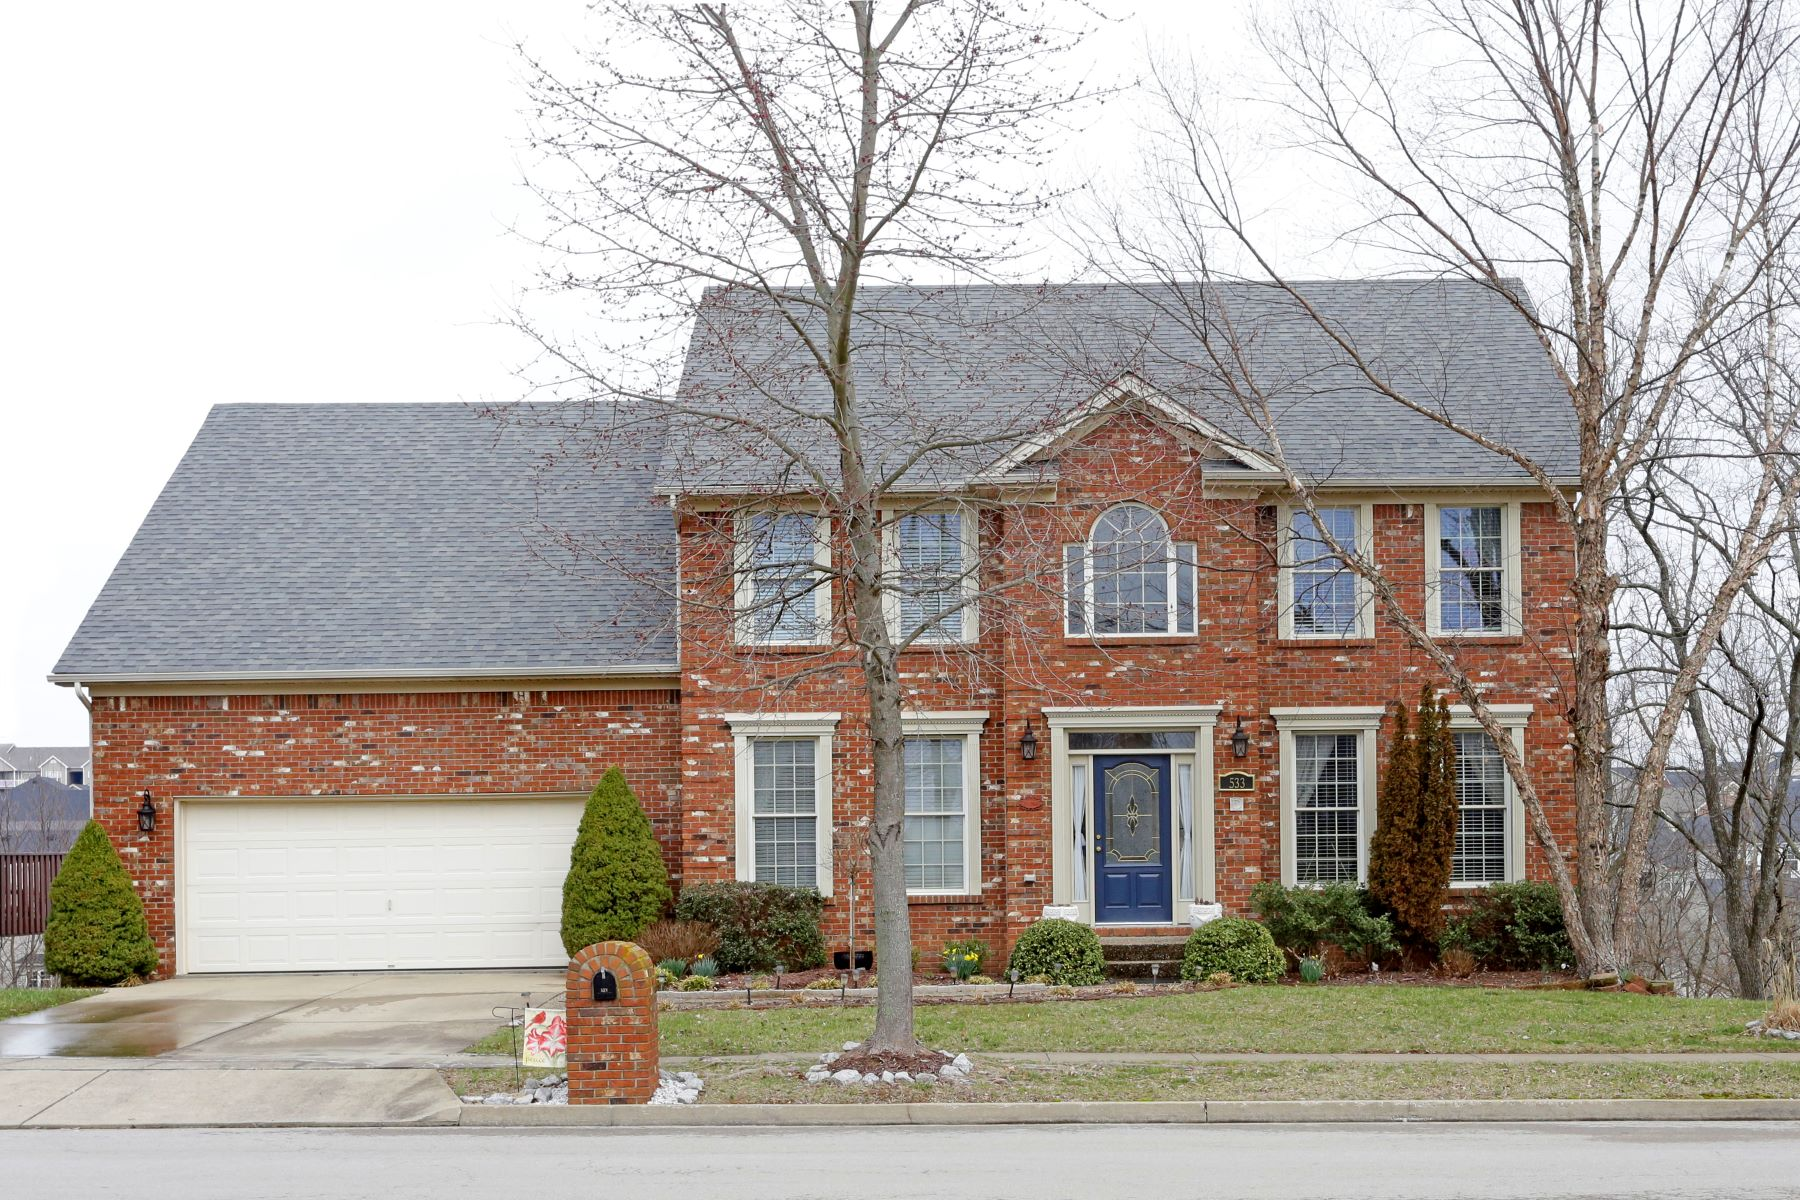 Single Family Home for Sale at 533 Alderbrook Way Lexington, Kentucky 40515 United States